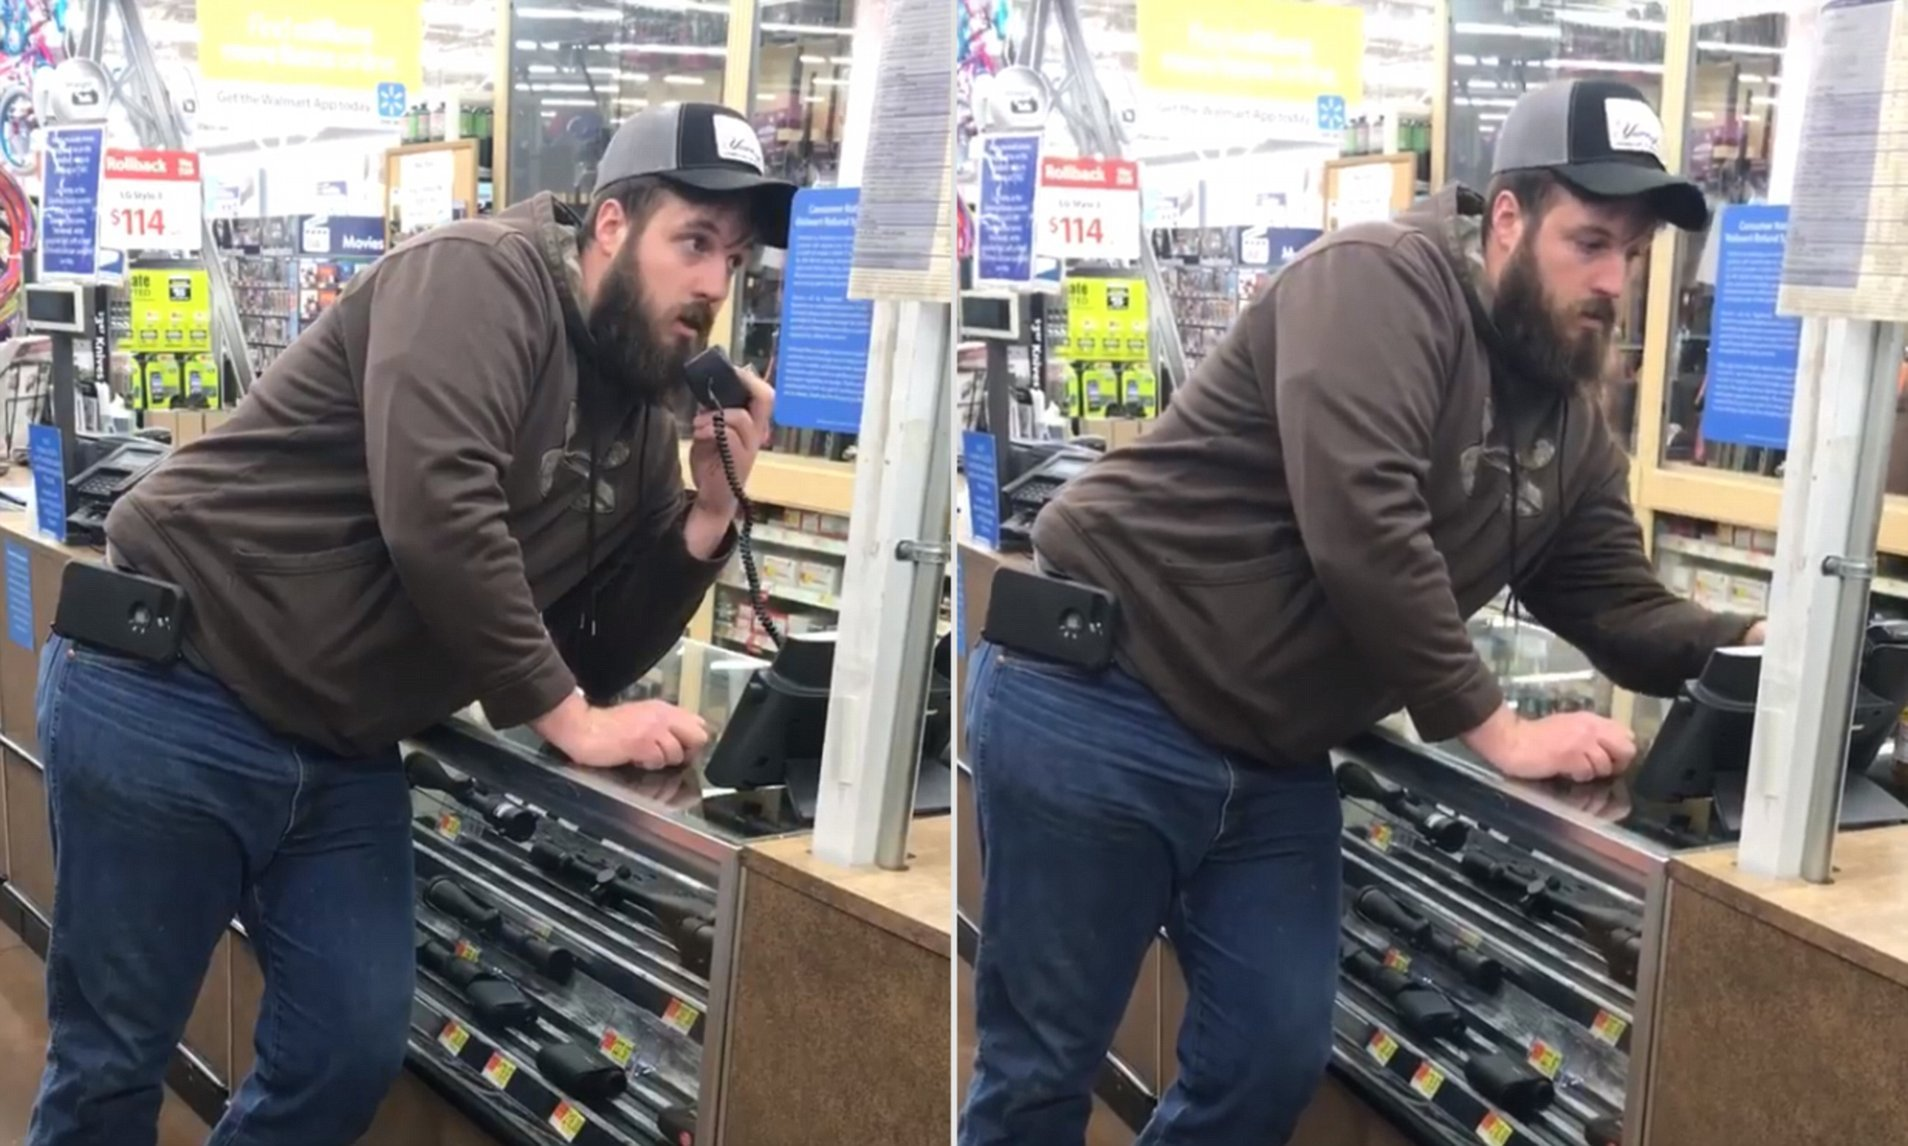 Walmart customer goes viral after using intercom